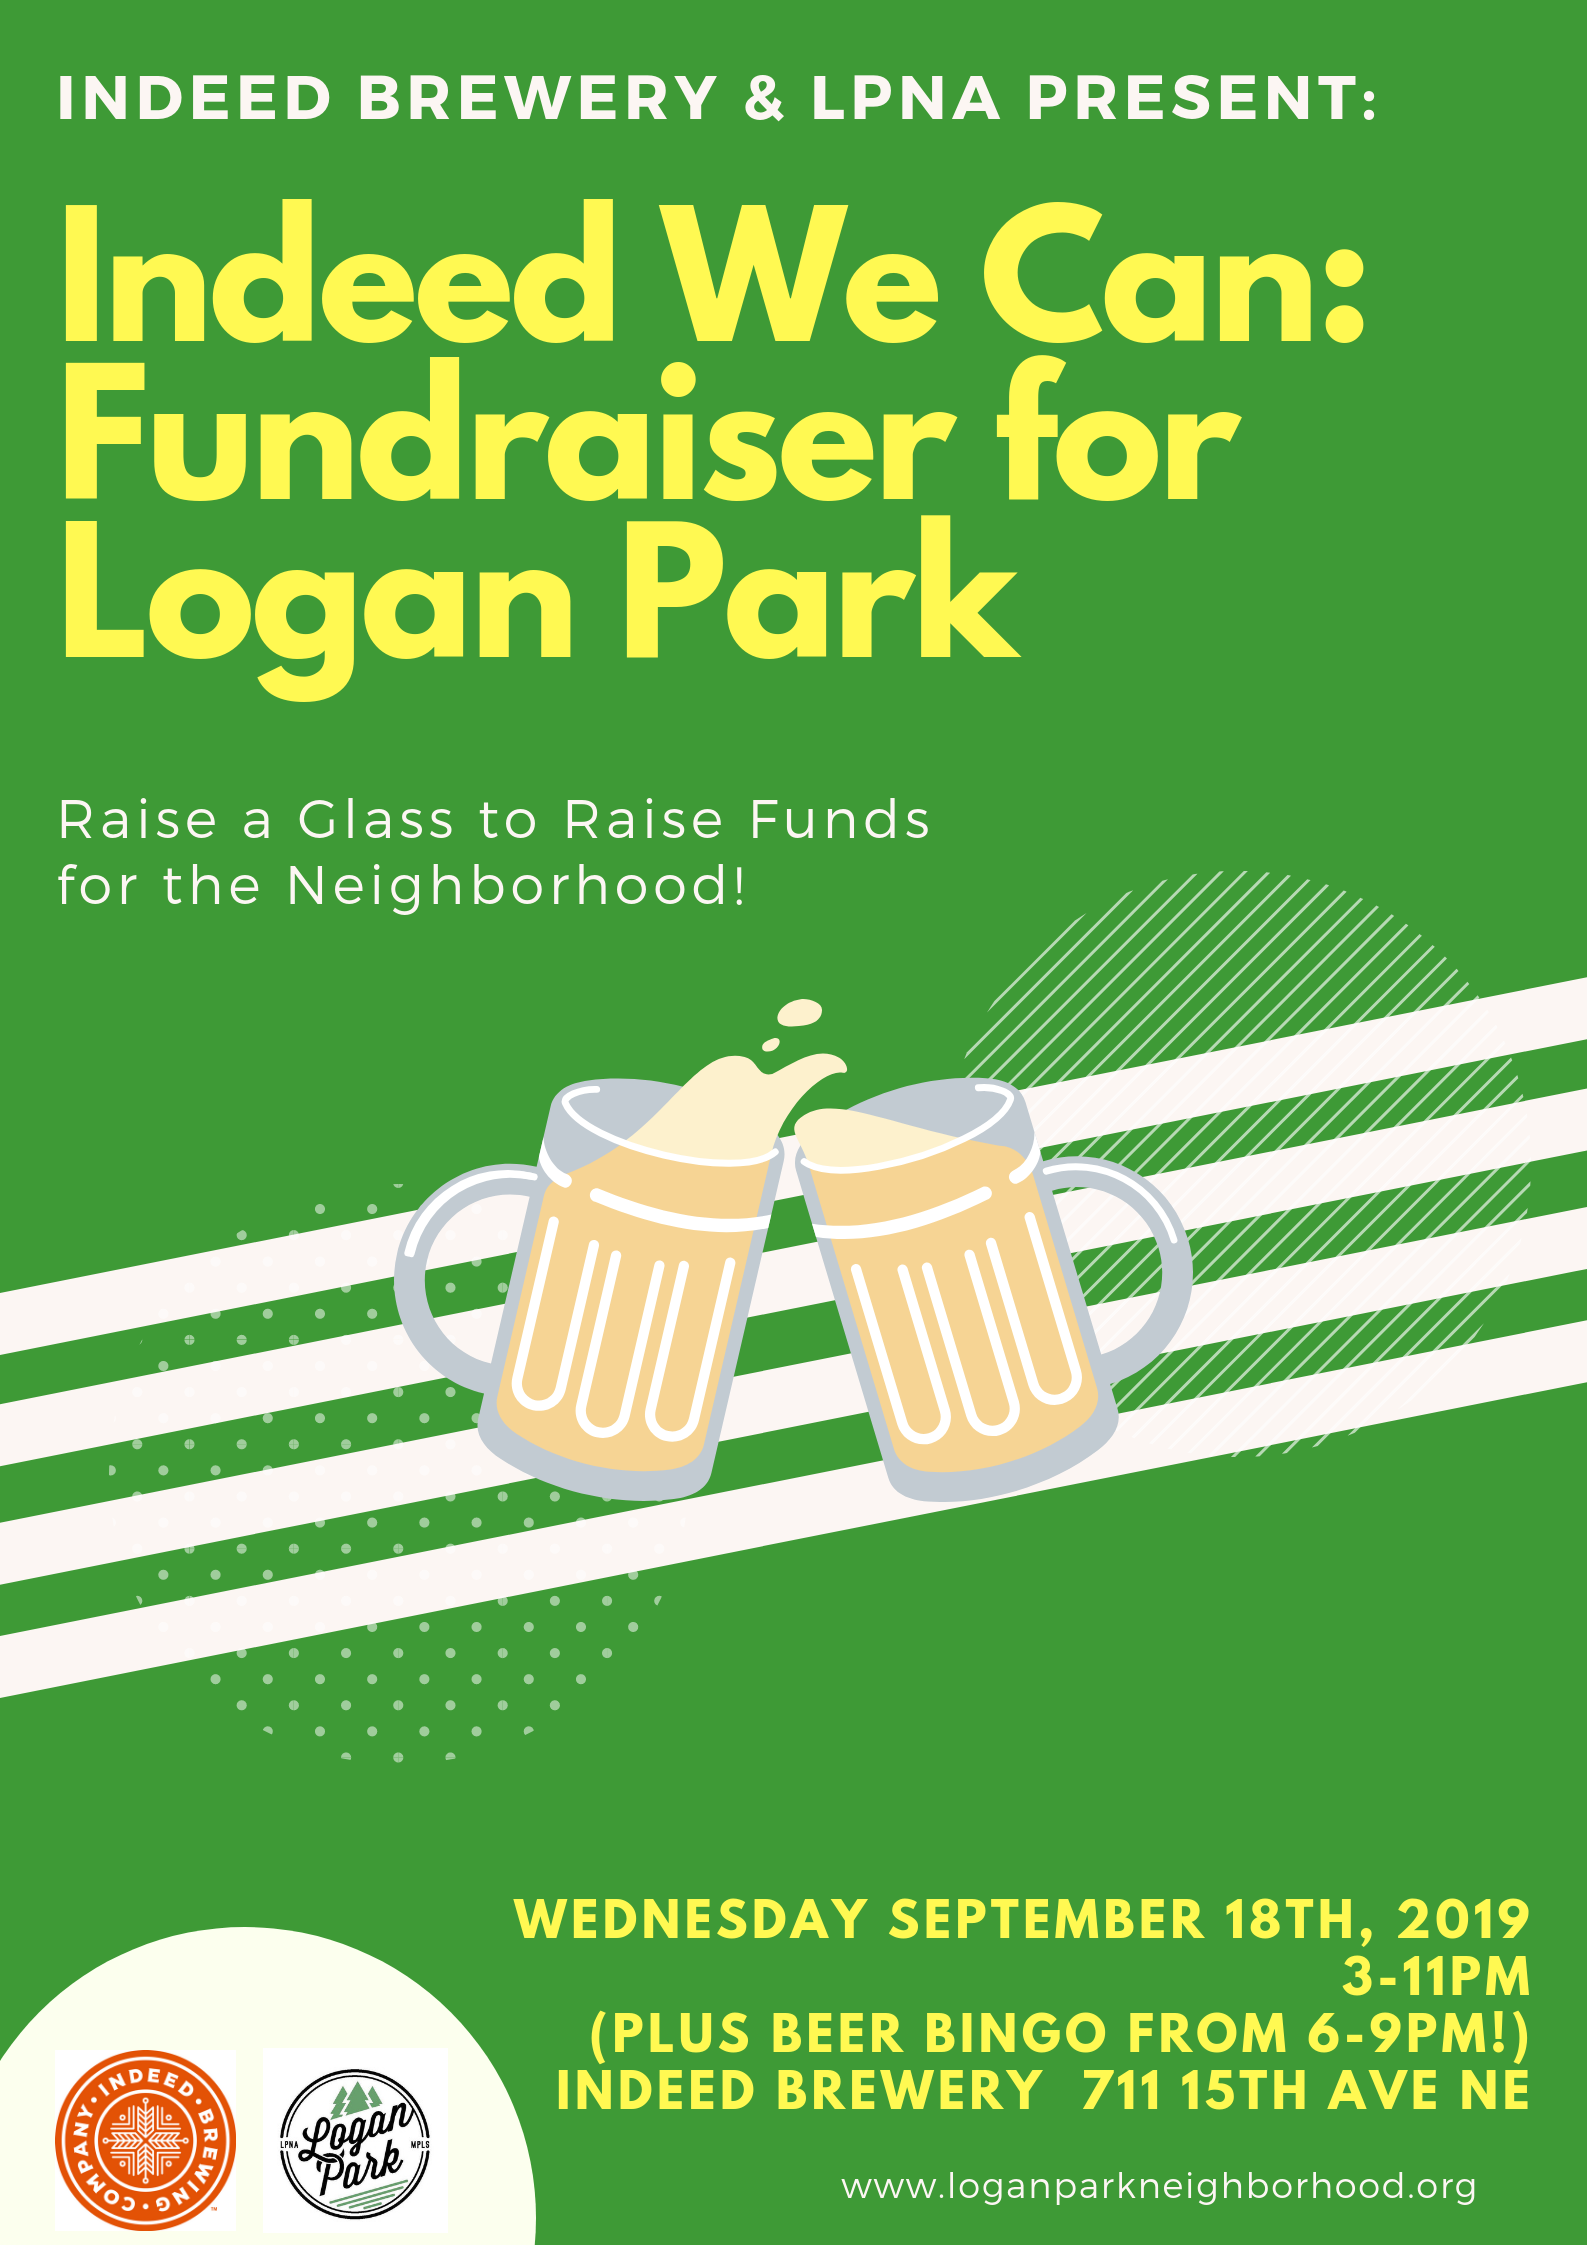 Indeed We Can Fundraiser September 18th, 2019